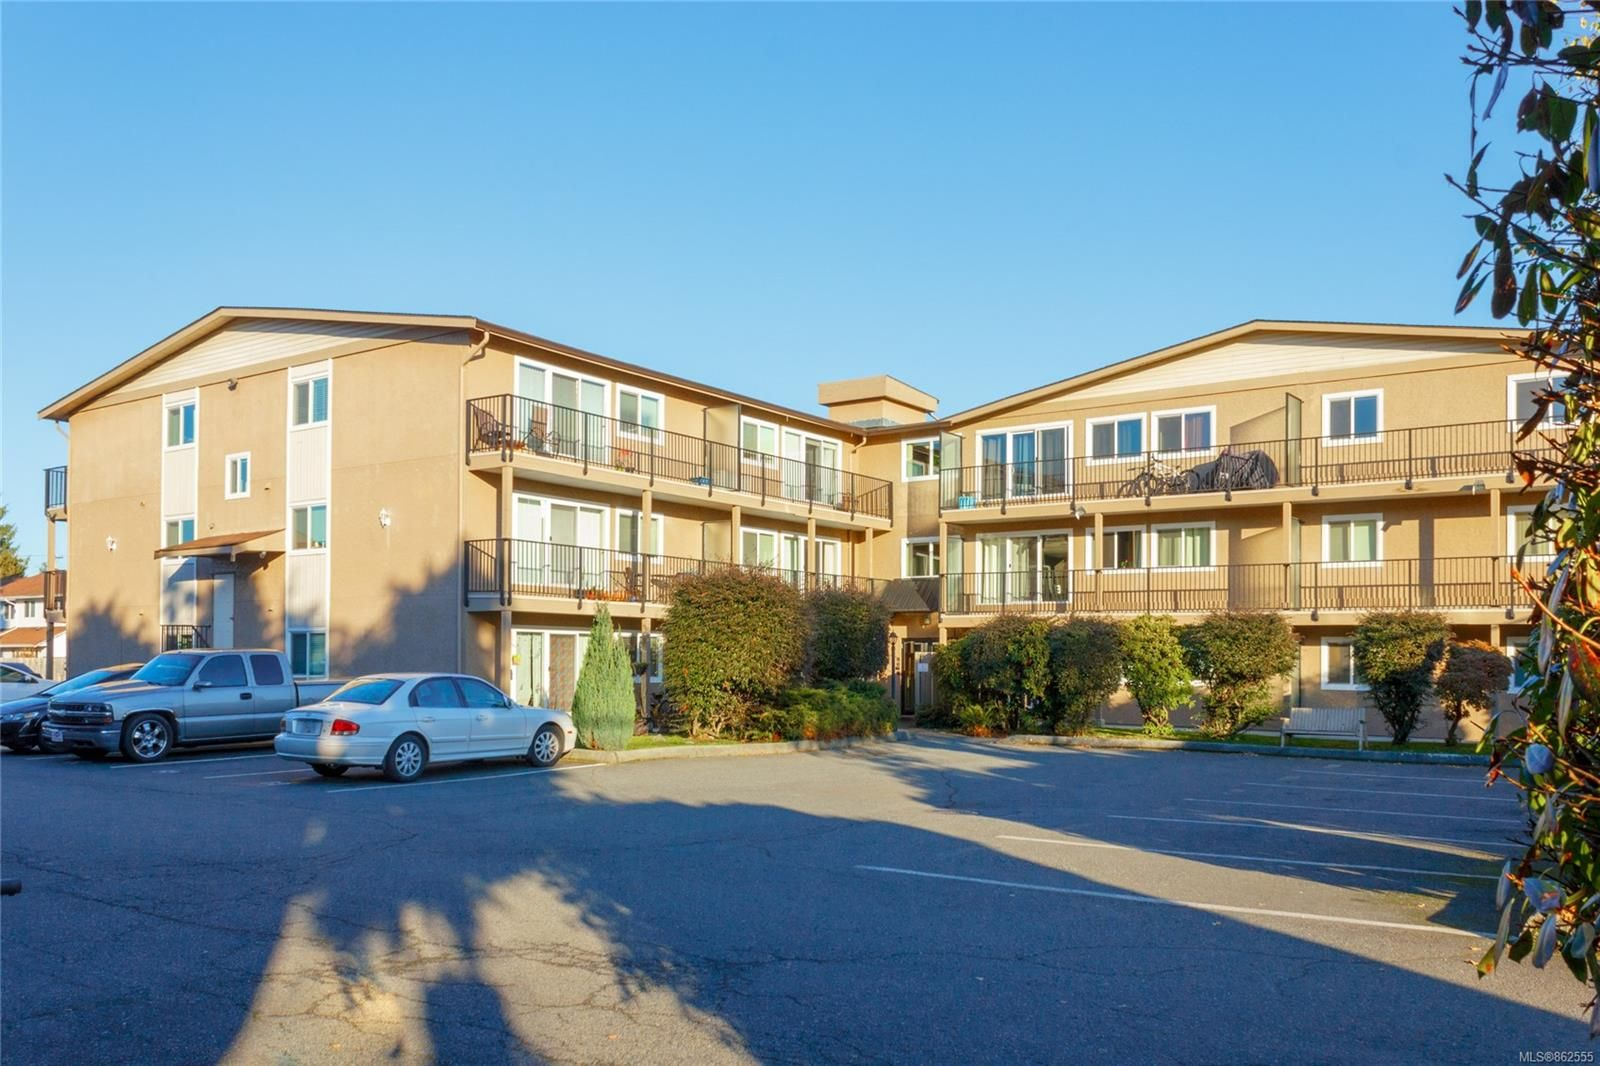 Main Photo: 205 2515 Alexander St in : Du East Duncan Condo for sale (Duncan)  : MLS®# 862555